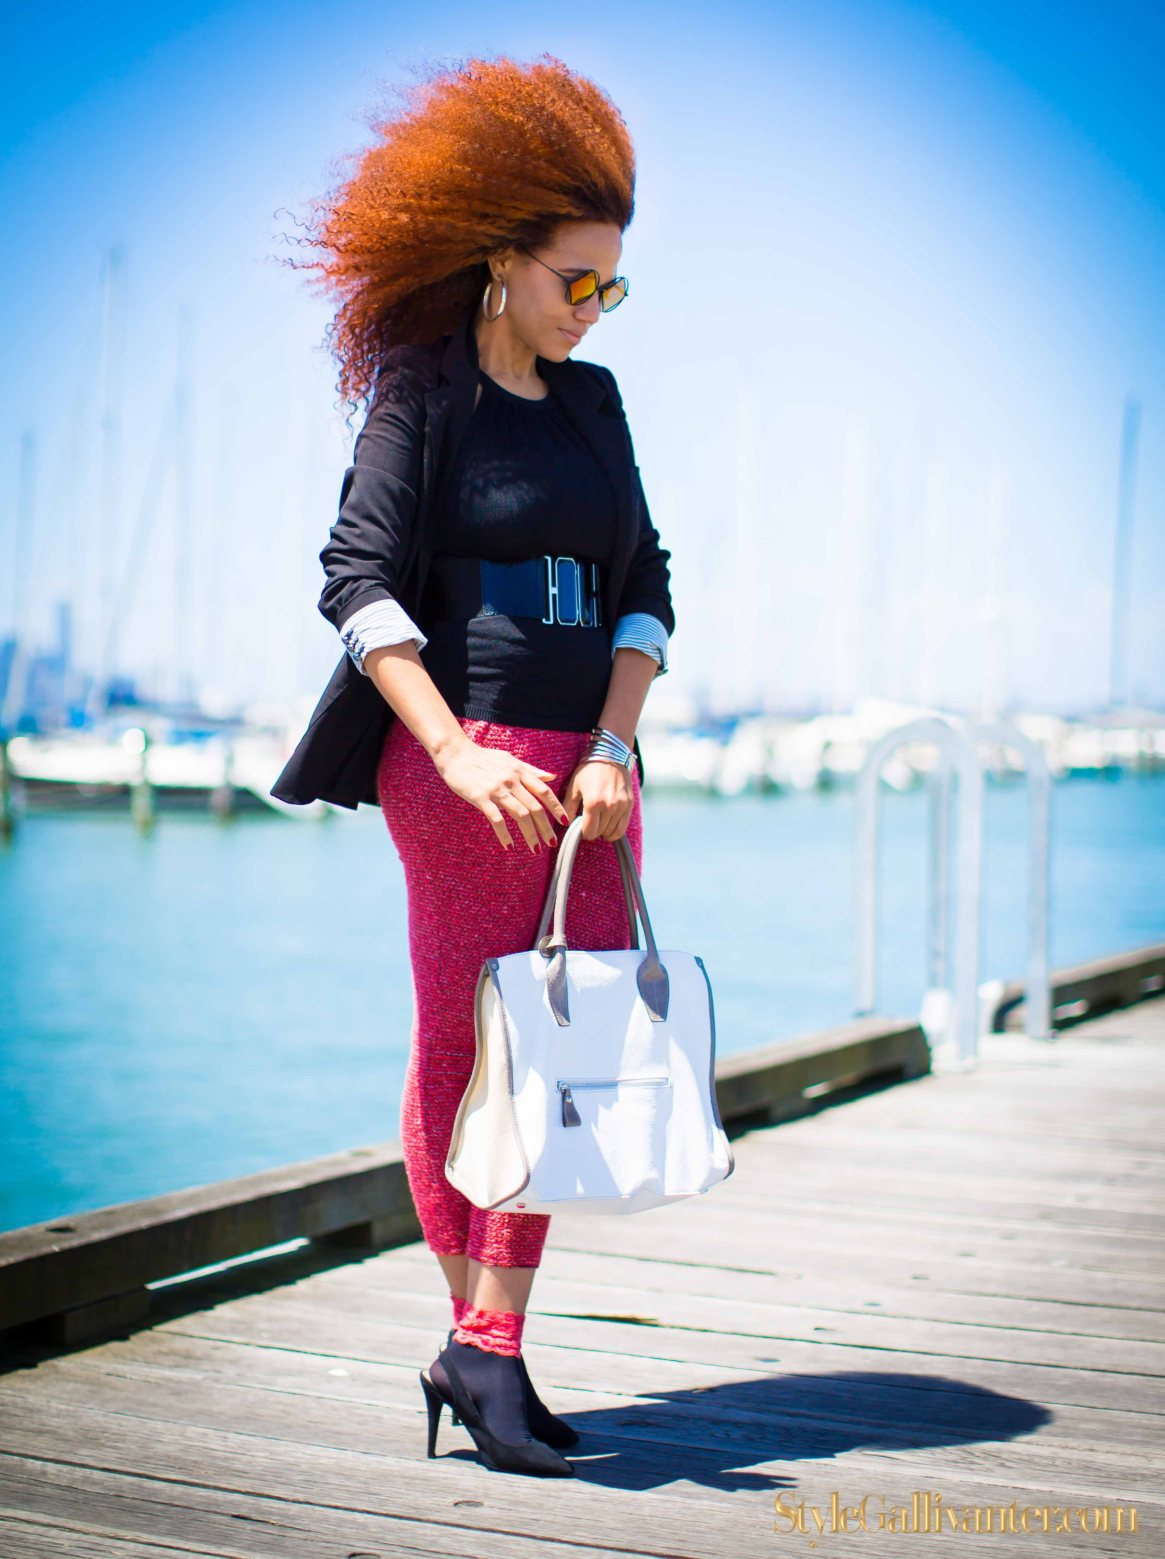 cover-girls-2014_the-face-australia_canberra-fashion-blogs_sydney-fashion-blogs_imternational-fashion-bloggers_africas-best-hair-bloggers_best-natural-hair-blogs-19